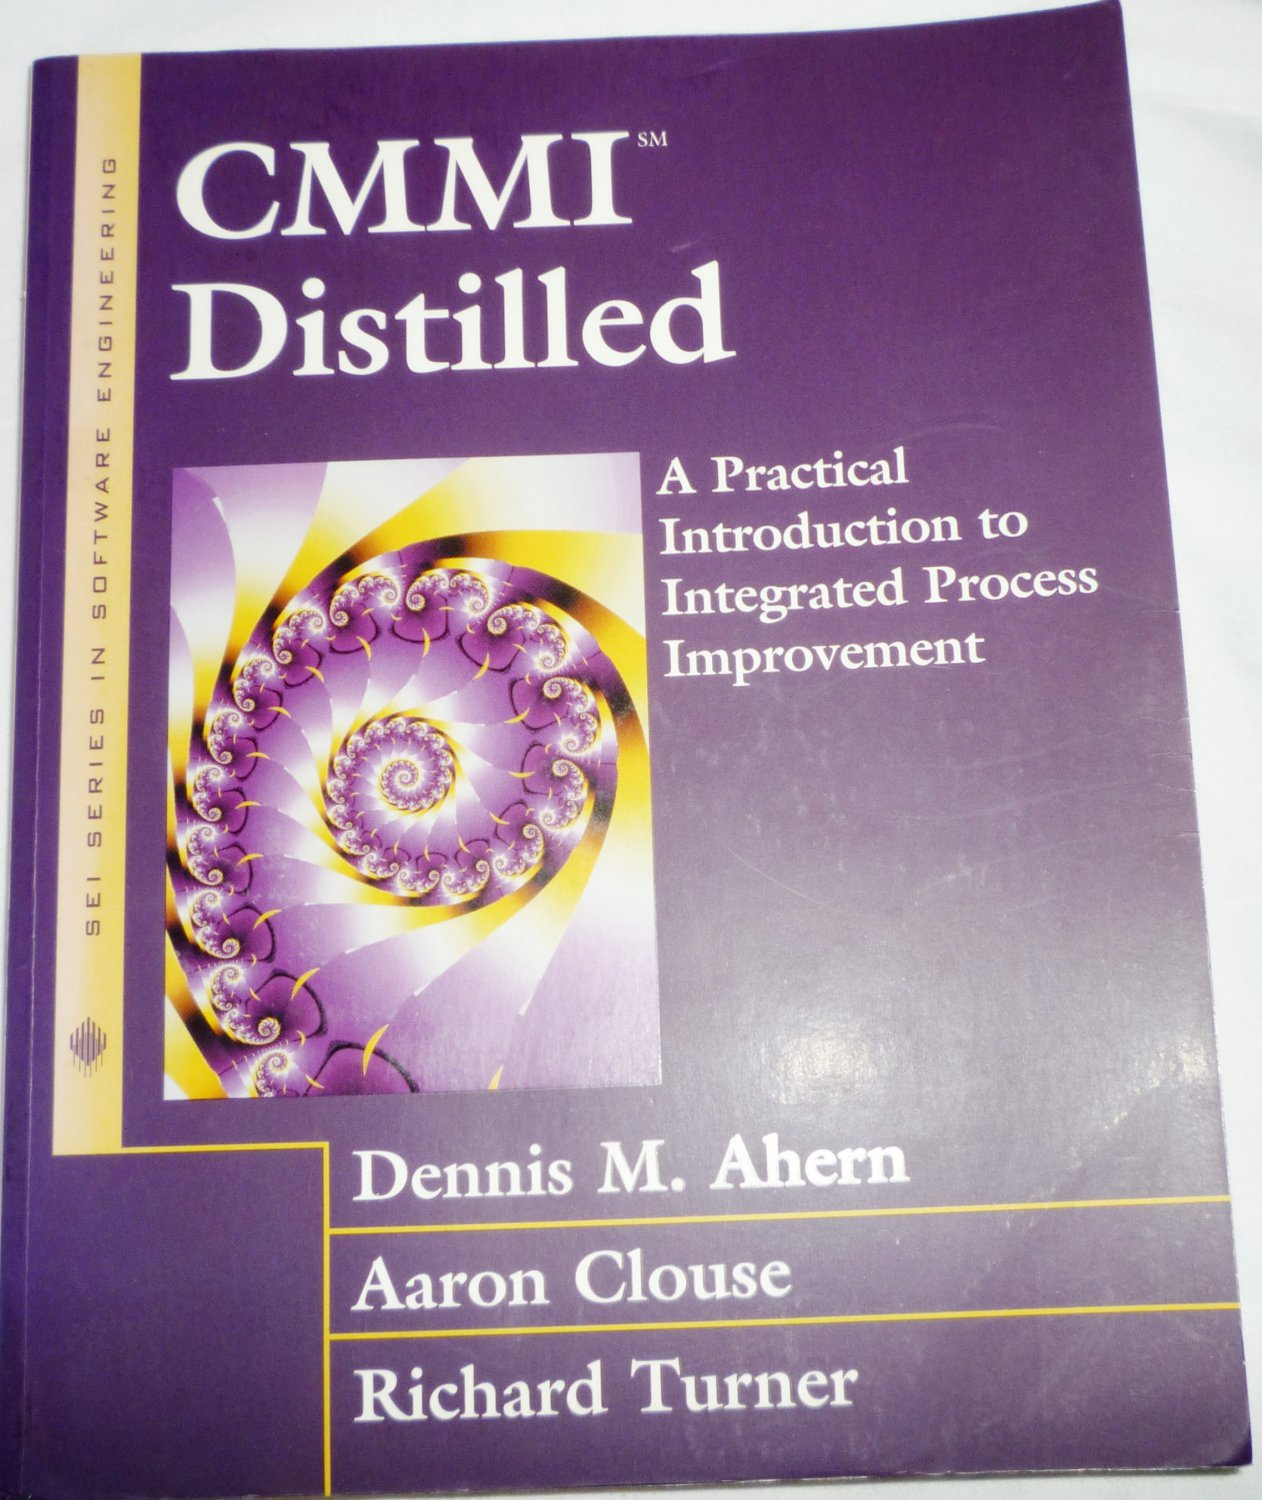 CMMI DISTILLED PRACTICAL INTRODUCTION TO INTEGRATED PROCESS IMPROVEMENT